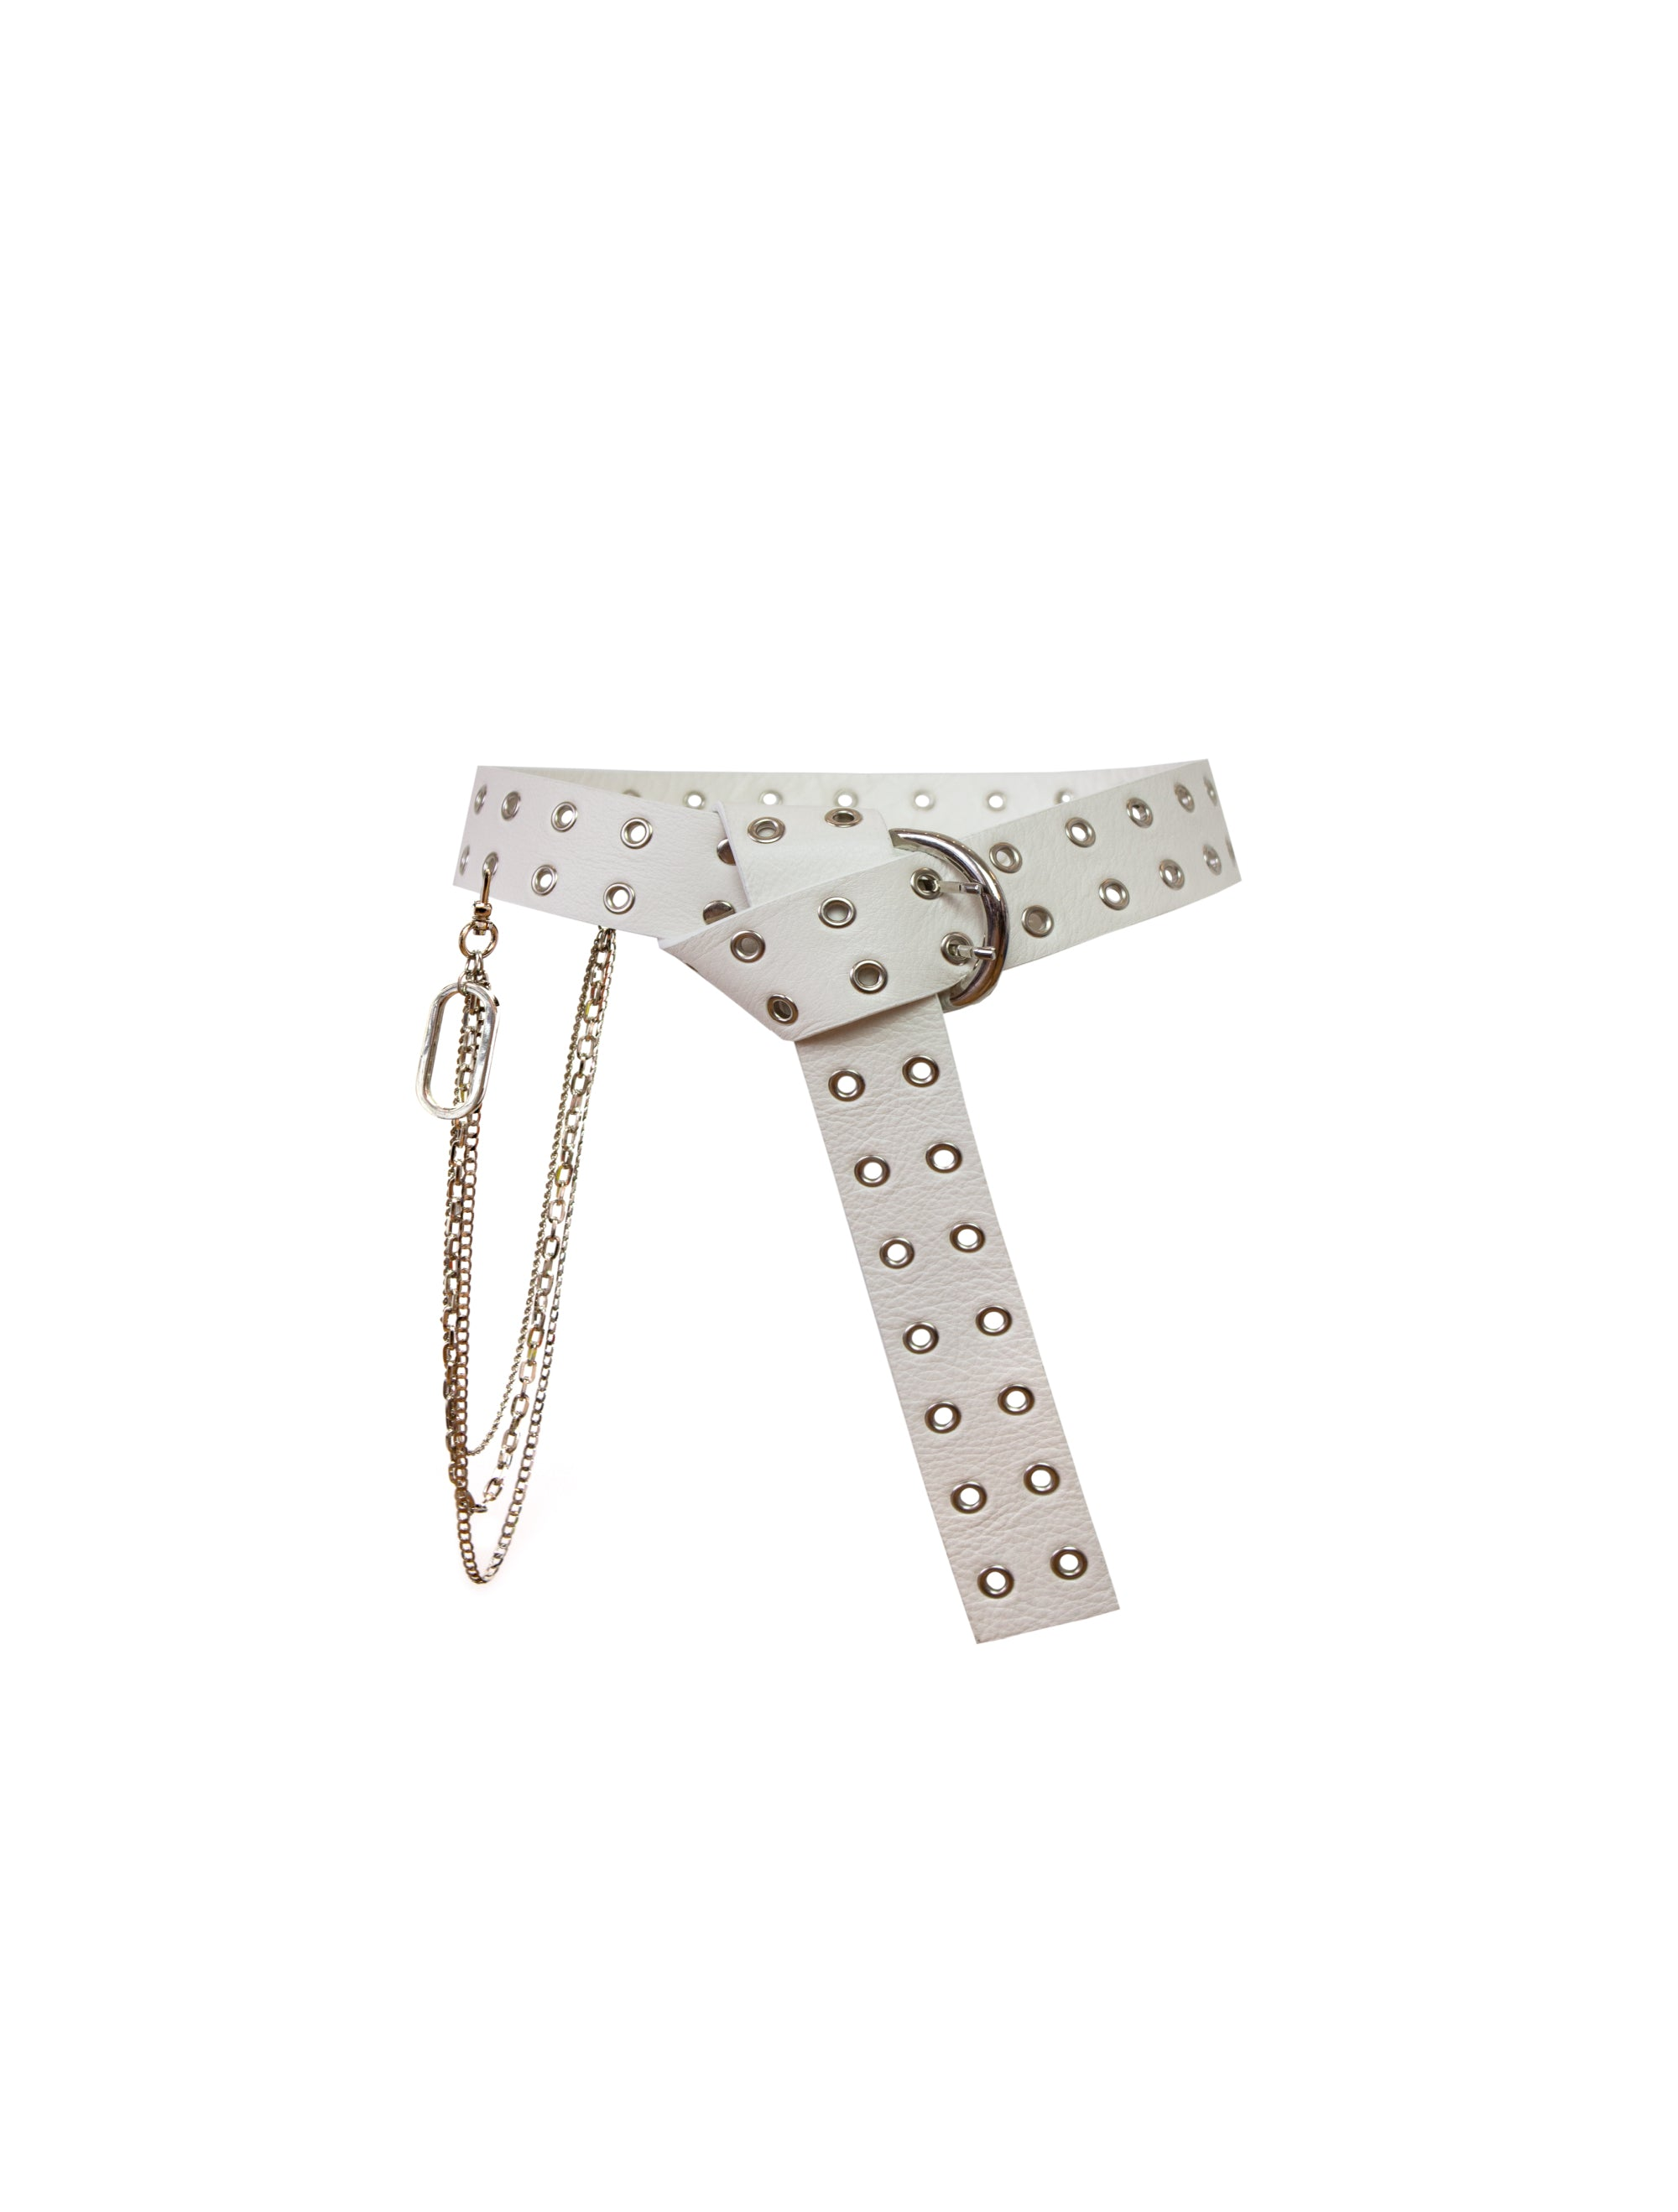 LEATHER BELT W/ CHAIN SET OFF-WHITE